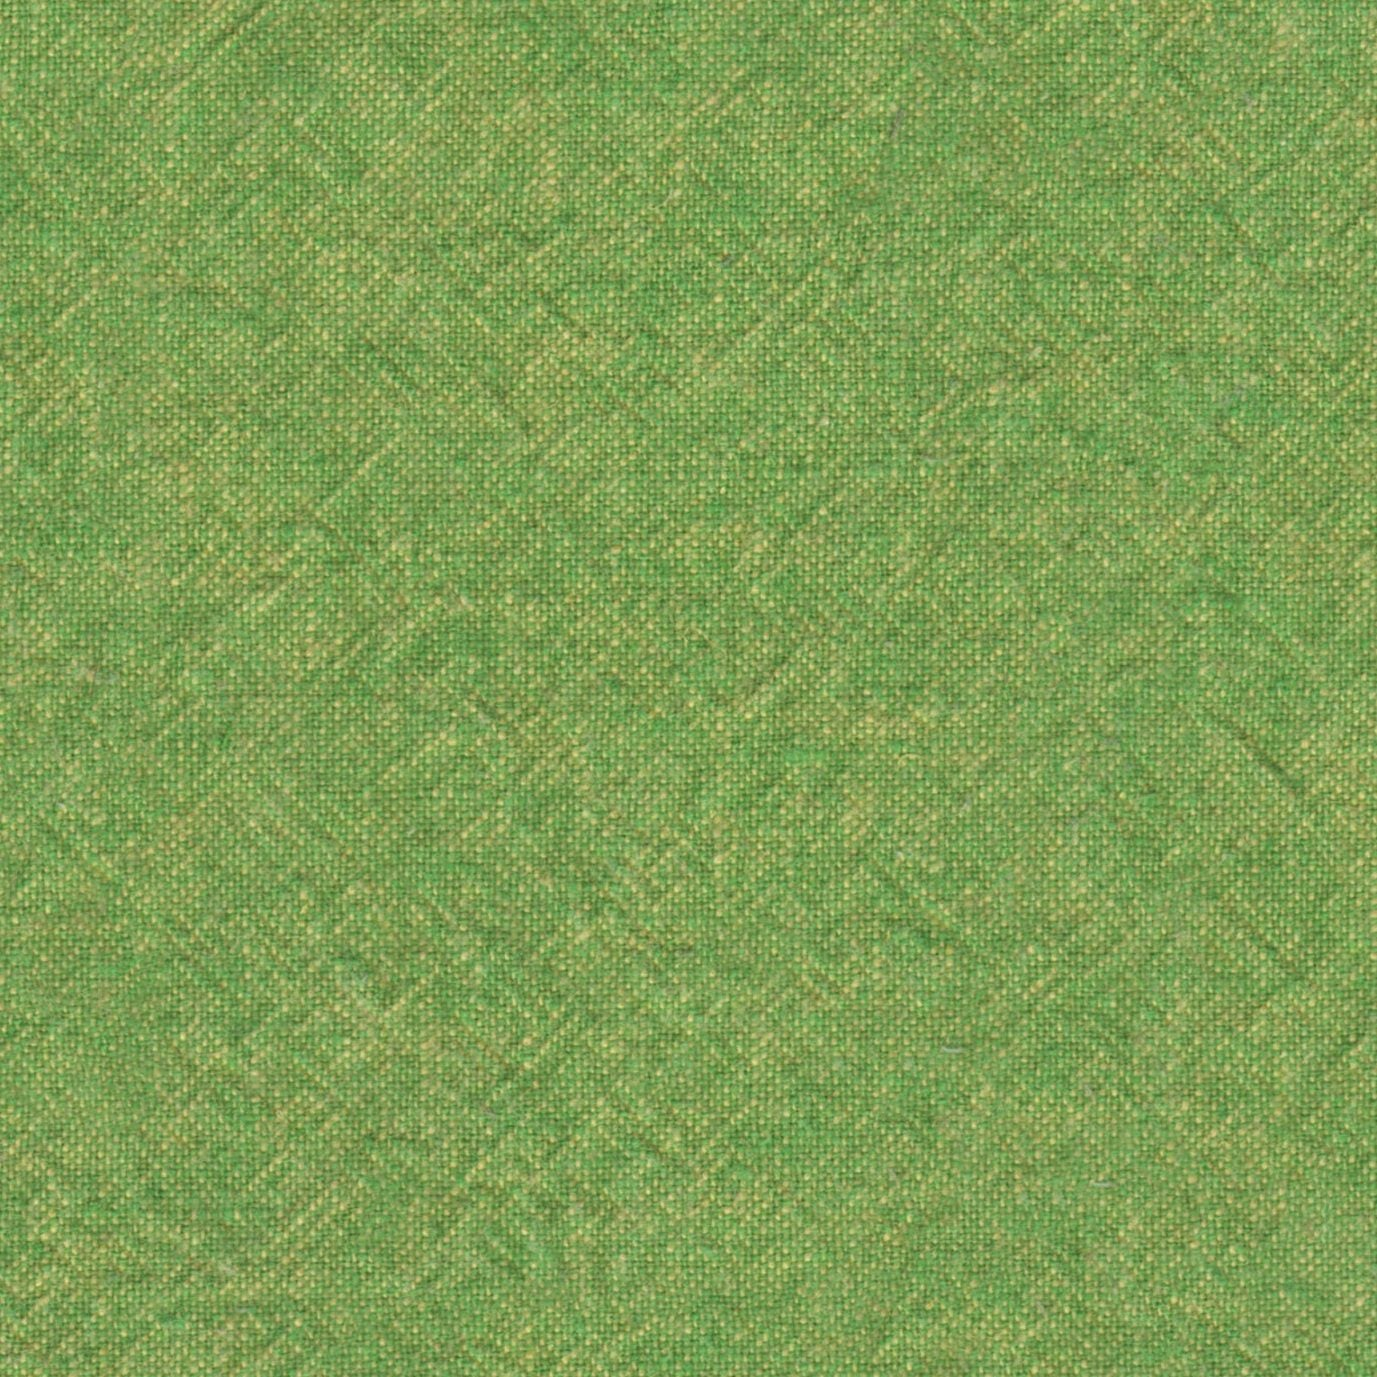 Linen-Union-in-English-Yellow-Antibes-Green-fabric-by-Annie-Sloan-2000-1800×1441